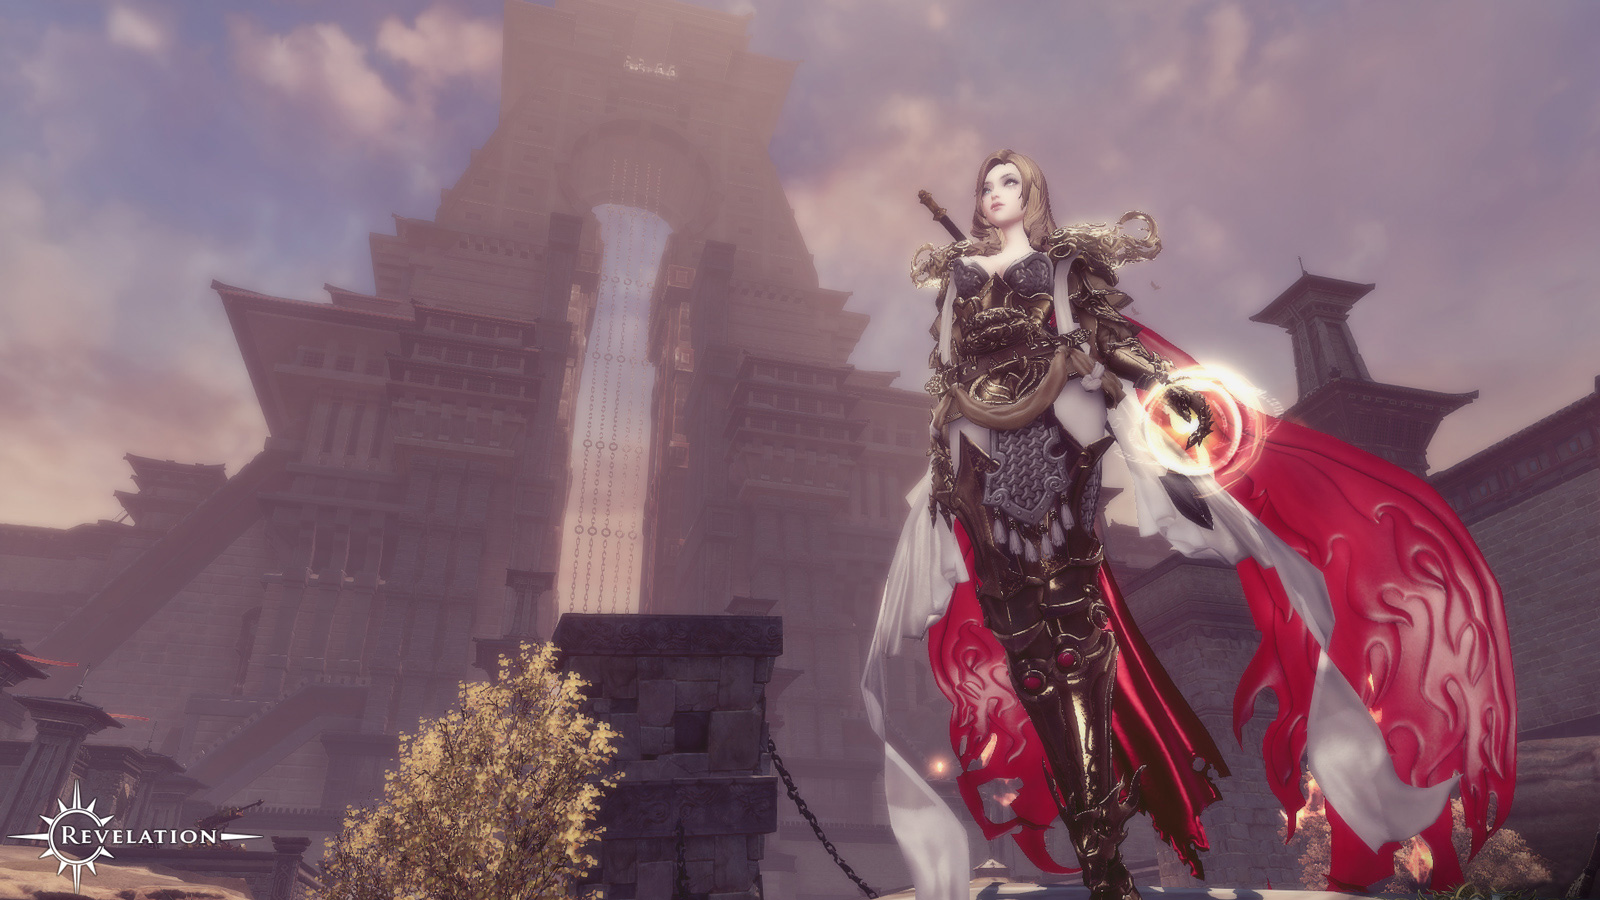 Revelation Online Gameplay Screenshot 4